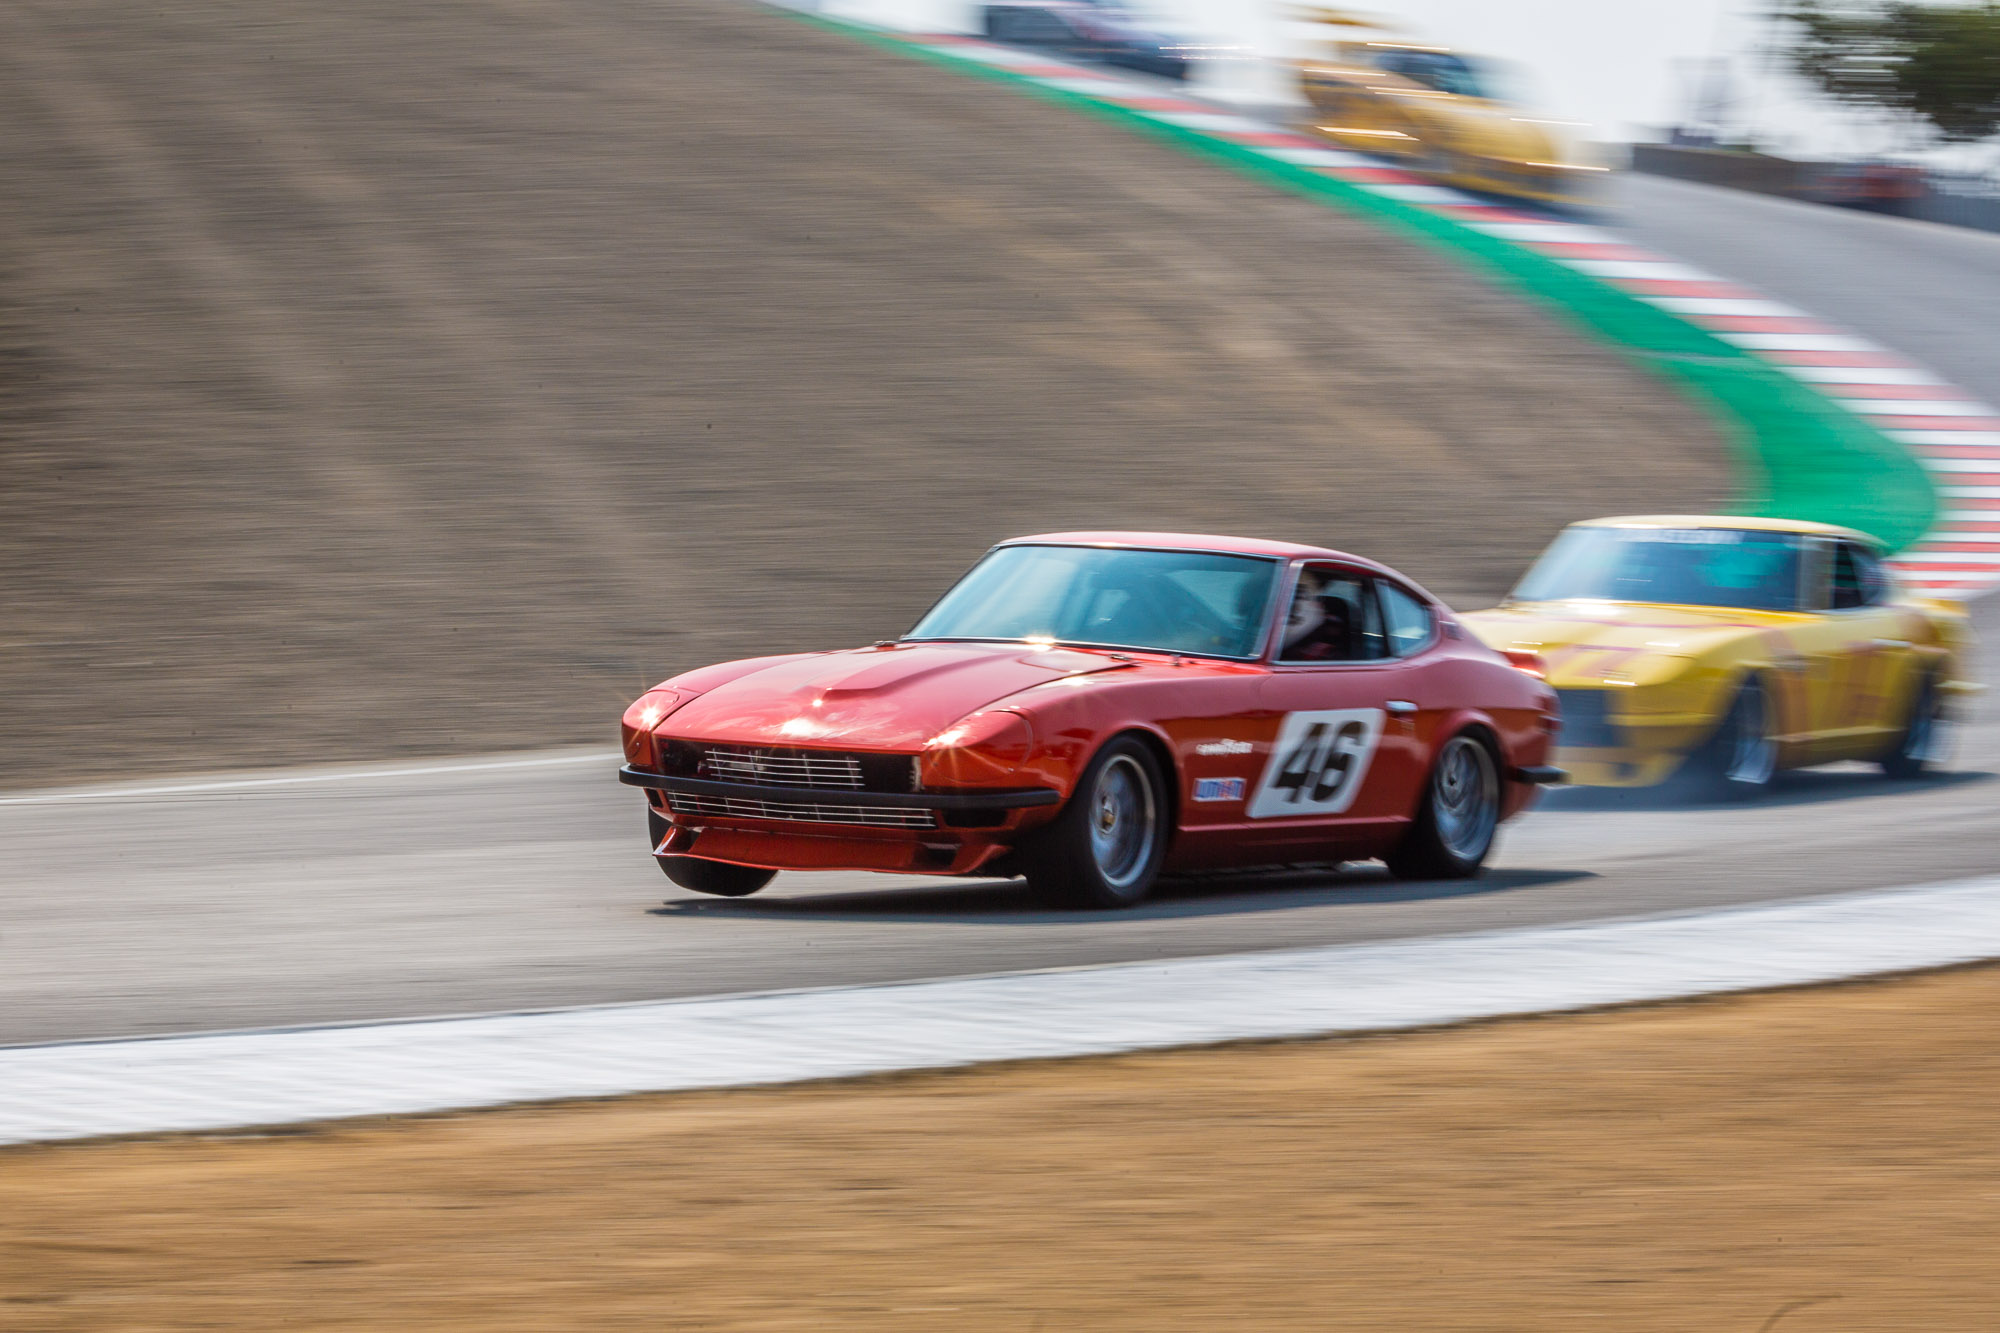 A Datsun 240Z at the Rolex Monterey Motorsports Reunion drives through the corkscrew section at Laguna Seca in Salinas, Calif. on August 25, 2018. (Eric Kayne/AP Images for Nissan)